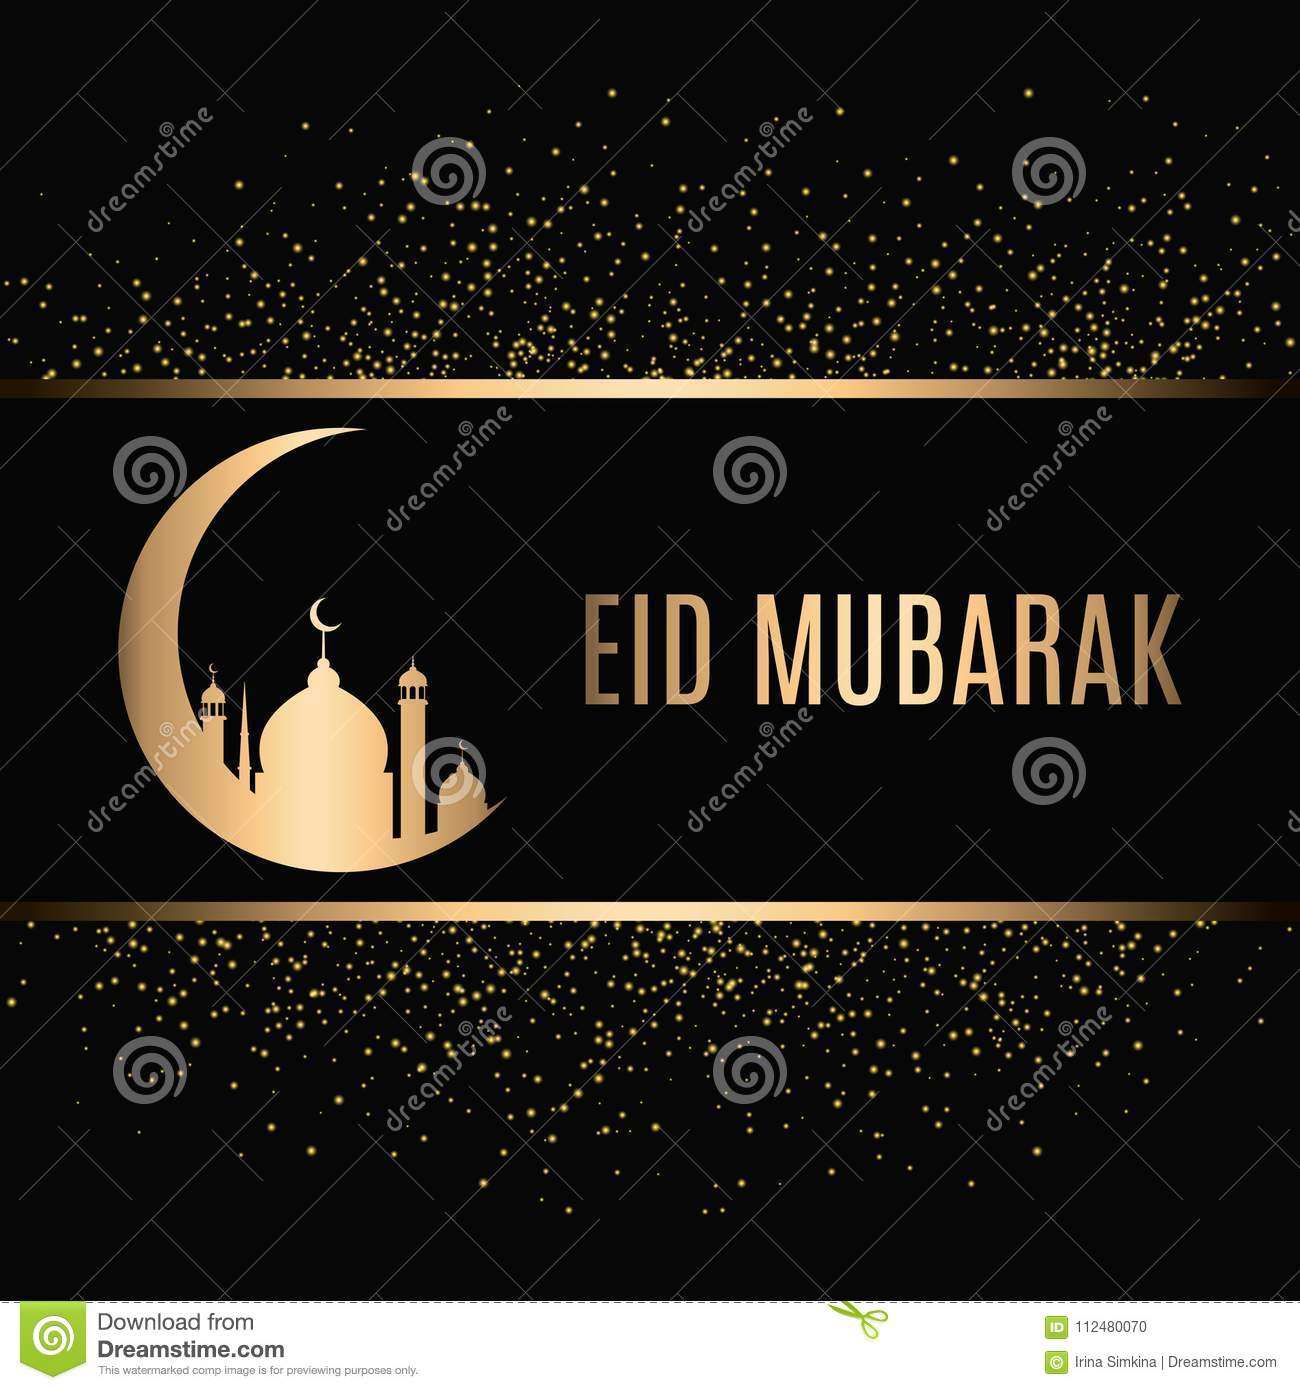 eid mubarak design background vector illustration for greeting card poster and banner stock vector illustration of islam lantern 112480070 https www dreamstime com eid mubarak design background vector illustration greeting card poster banner eid mubarak design background gold sparkling image112480070